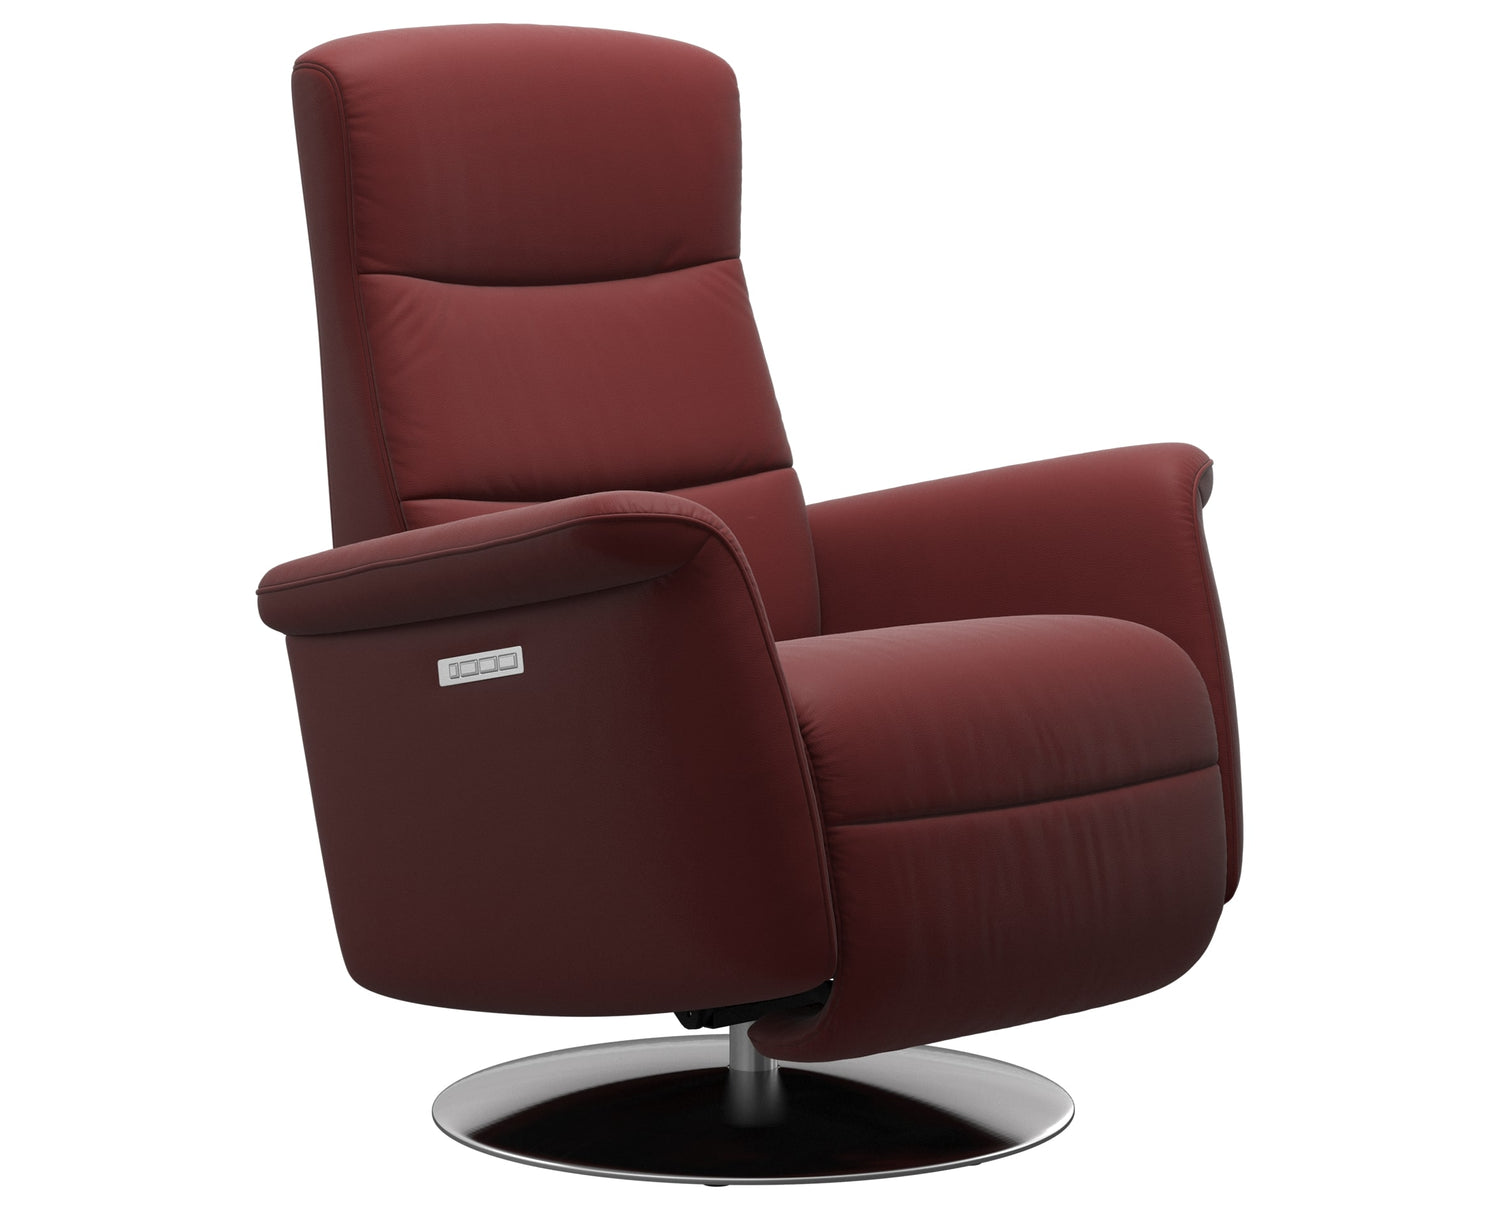 Paloma Leather Cherry S/M/L & Steel Base | Stressless Mike Recliner | Valley Ridge Furniture